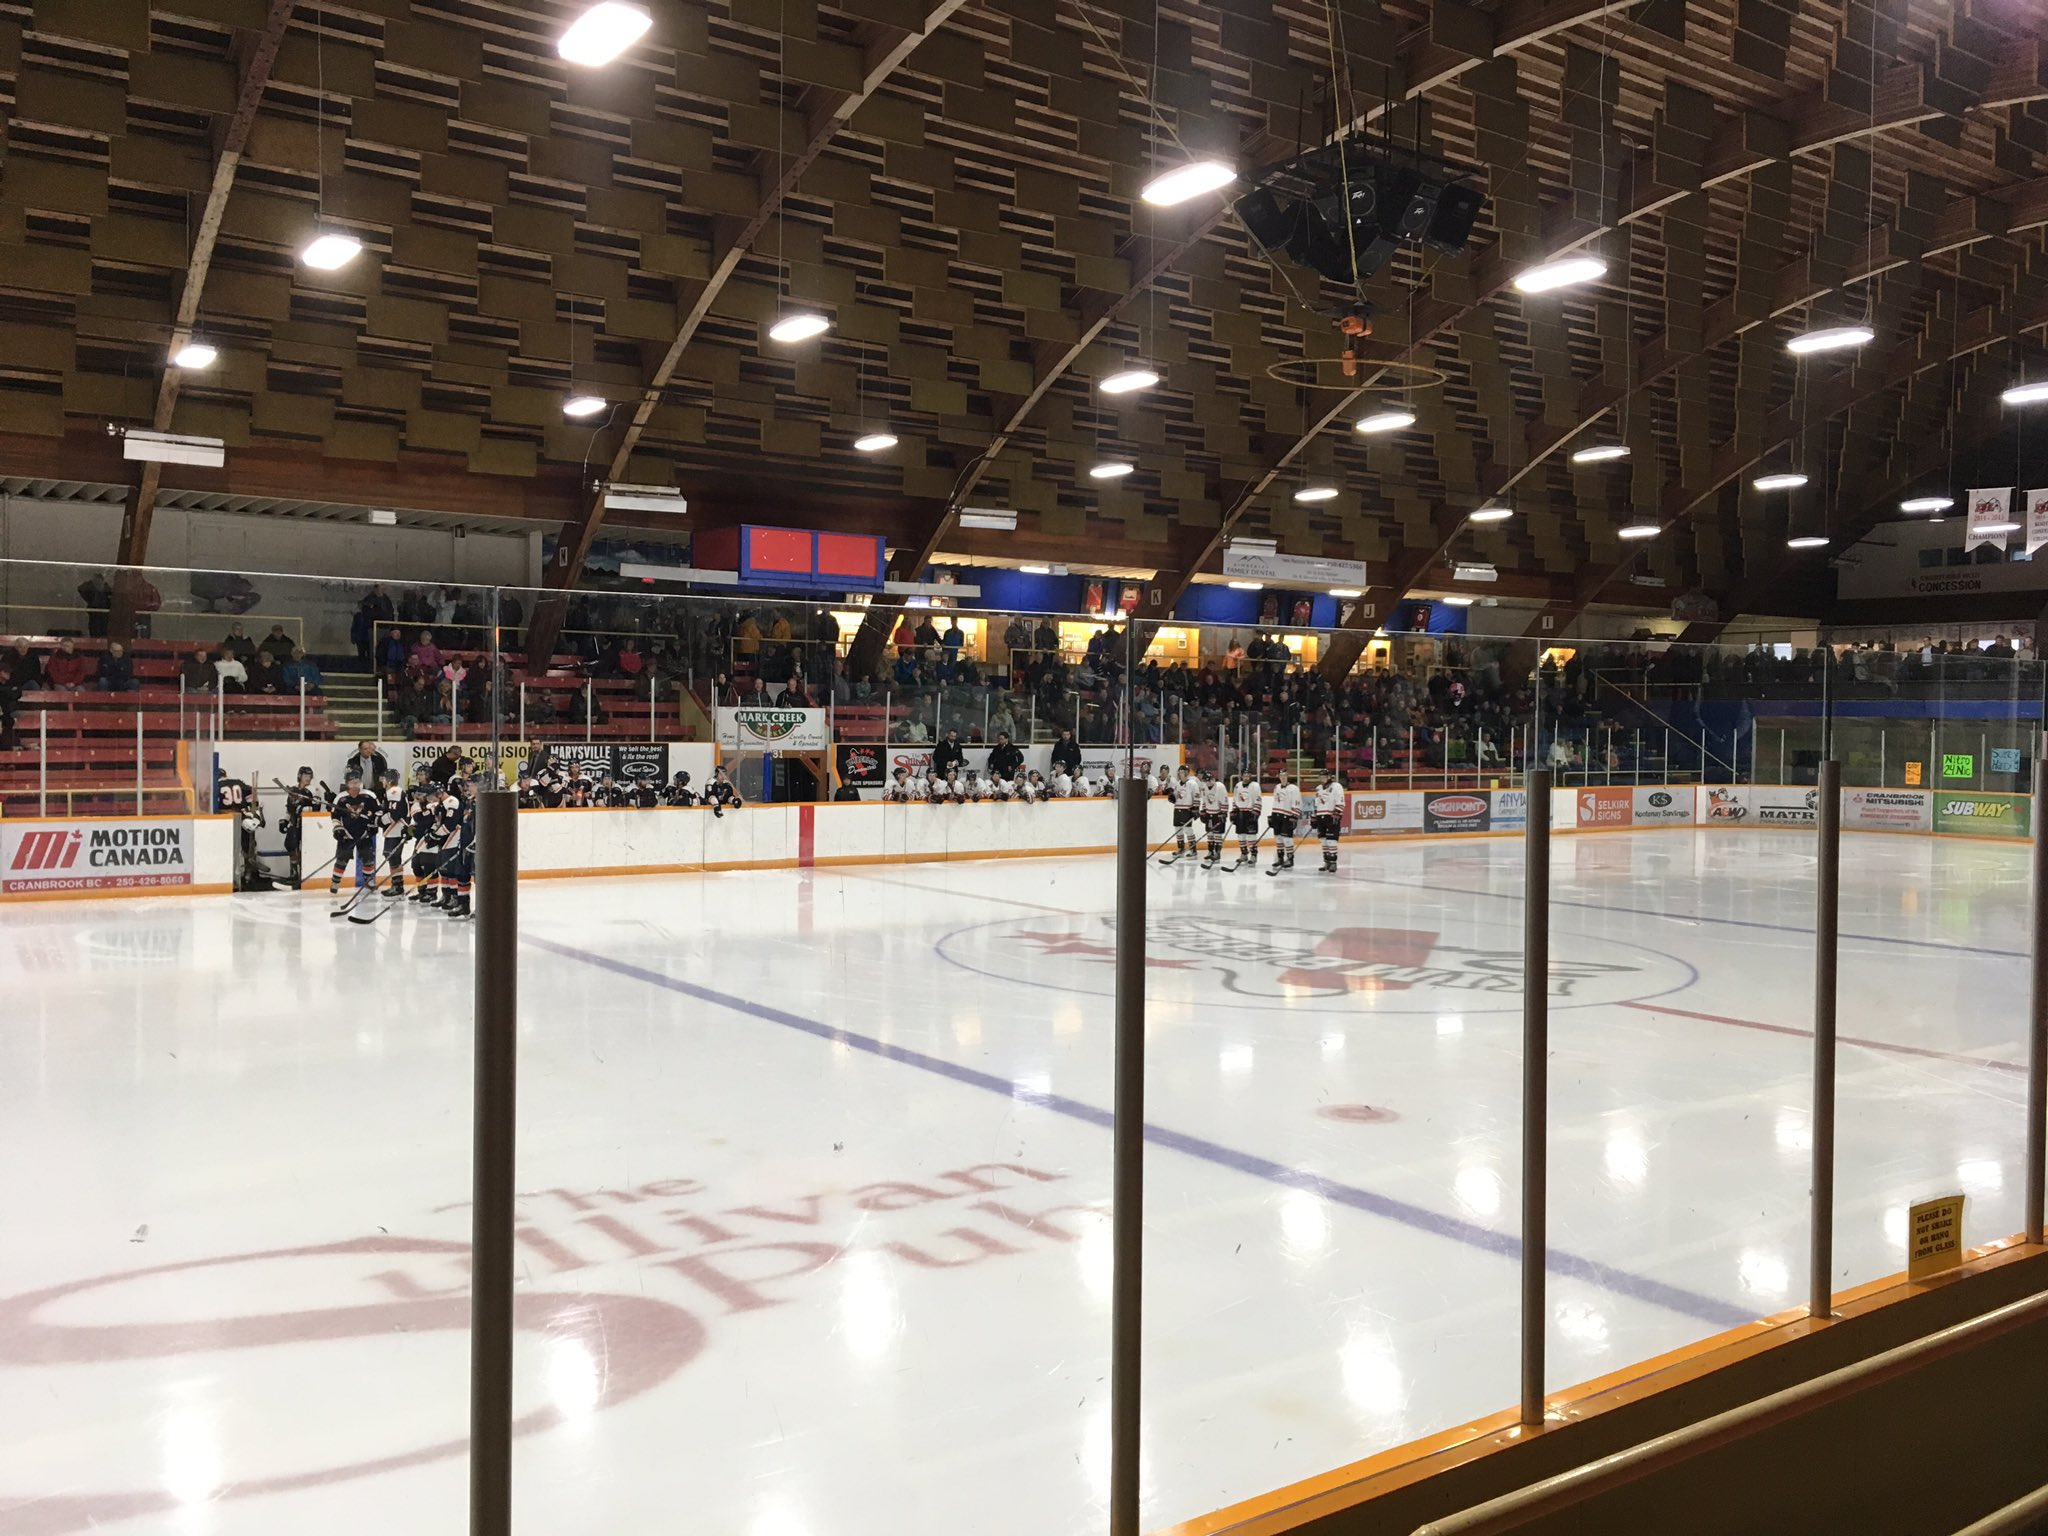 KIJHL: Nitros against the ropes after GM 3 loss